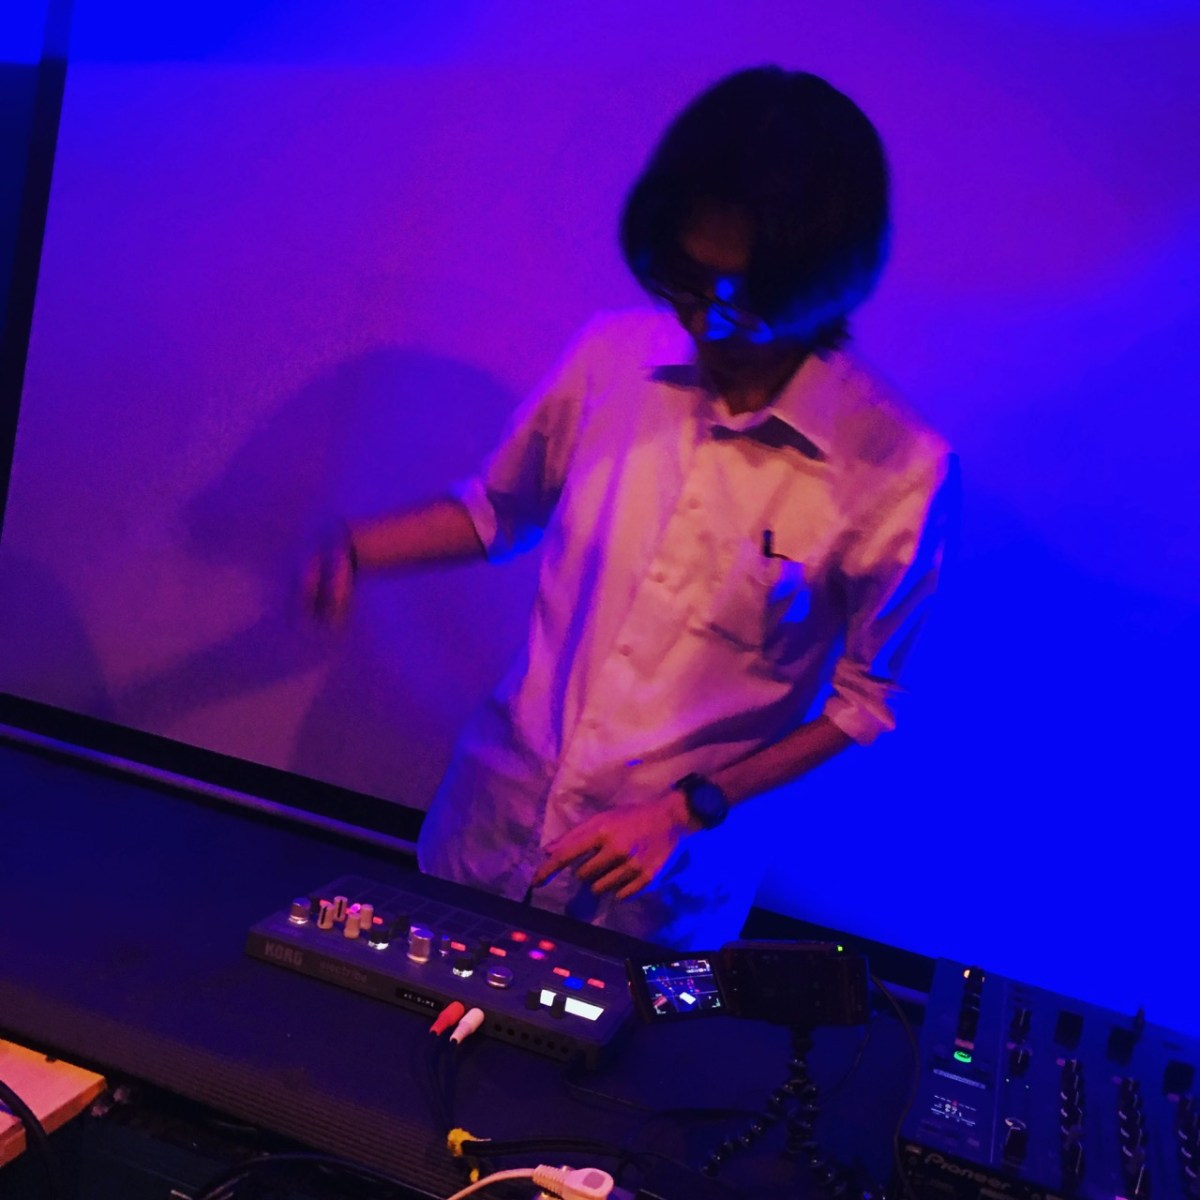 acid-me at ni-sui vol.12